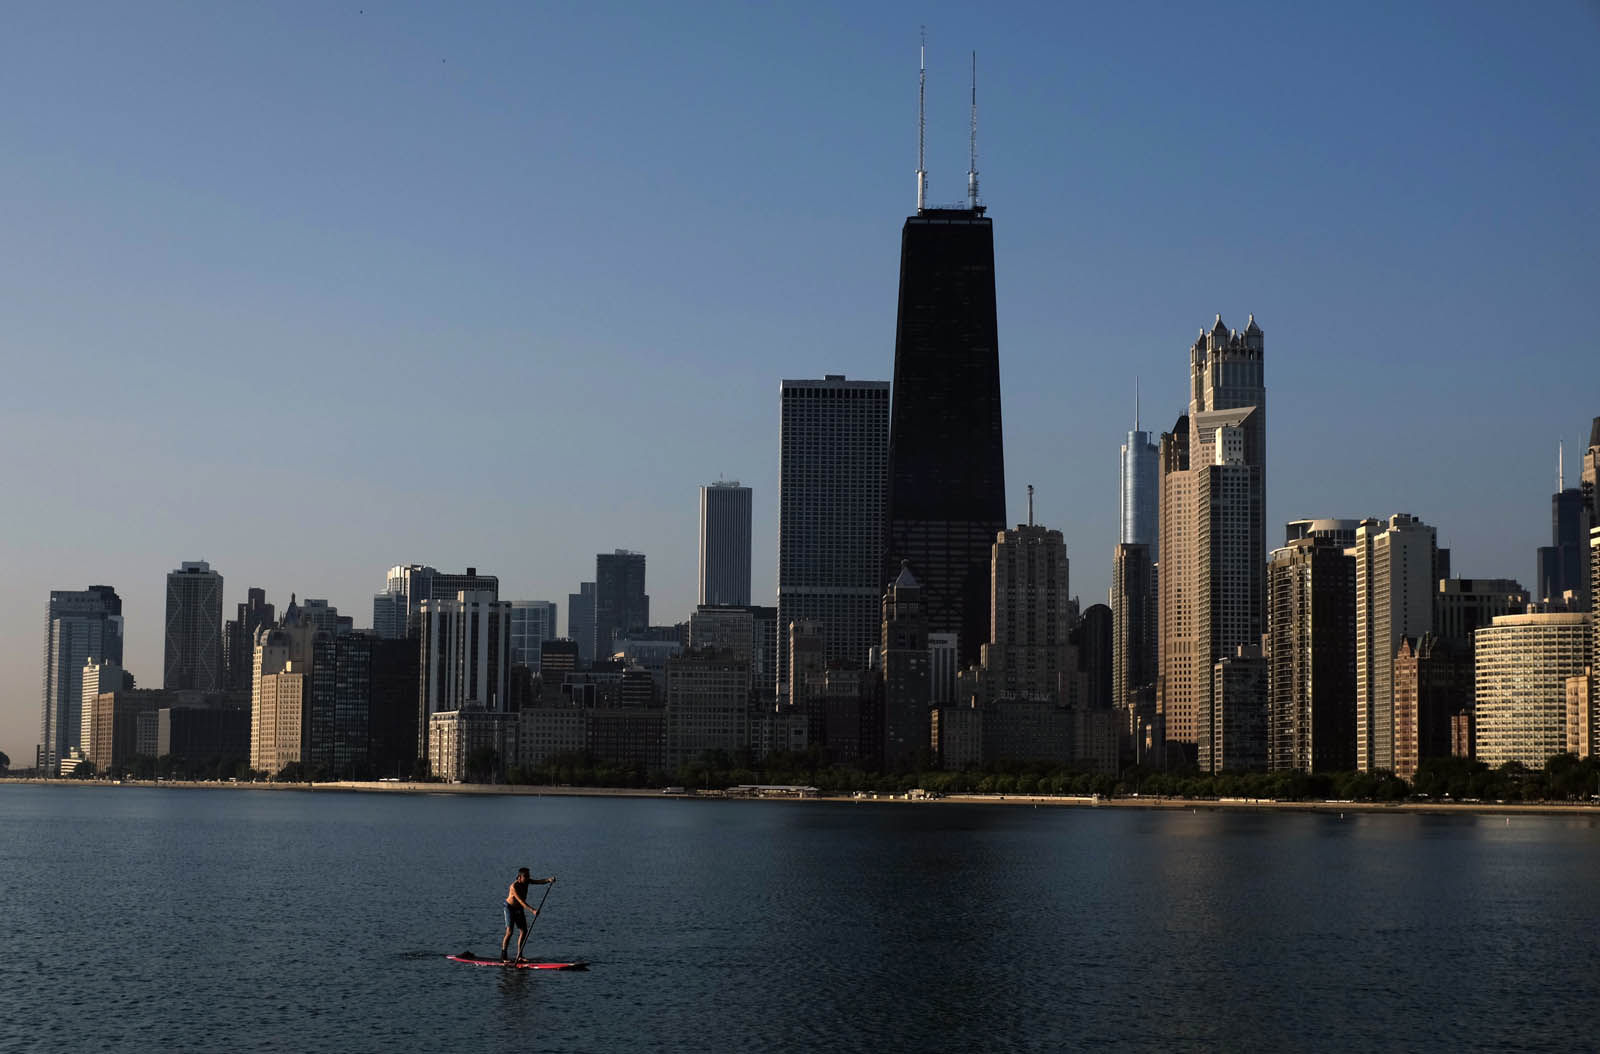 A paddle boarder coasts along the smooth surface of Lake Michigan with the downtown skyline in the background Wednesday morning, Aug. 20, 2014, in Chicago. (AP Photo/Kiichiro Sato)